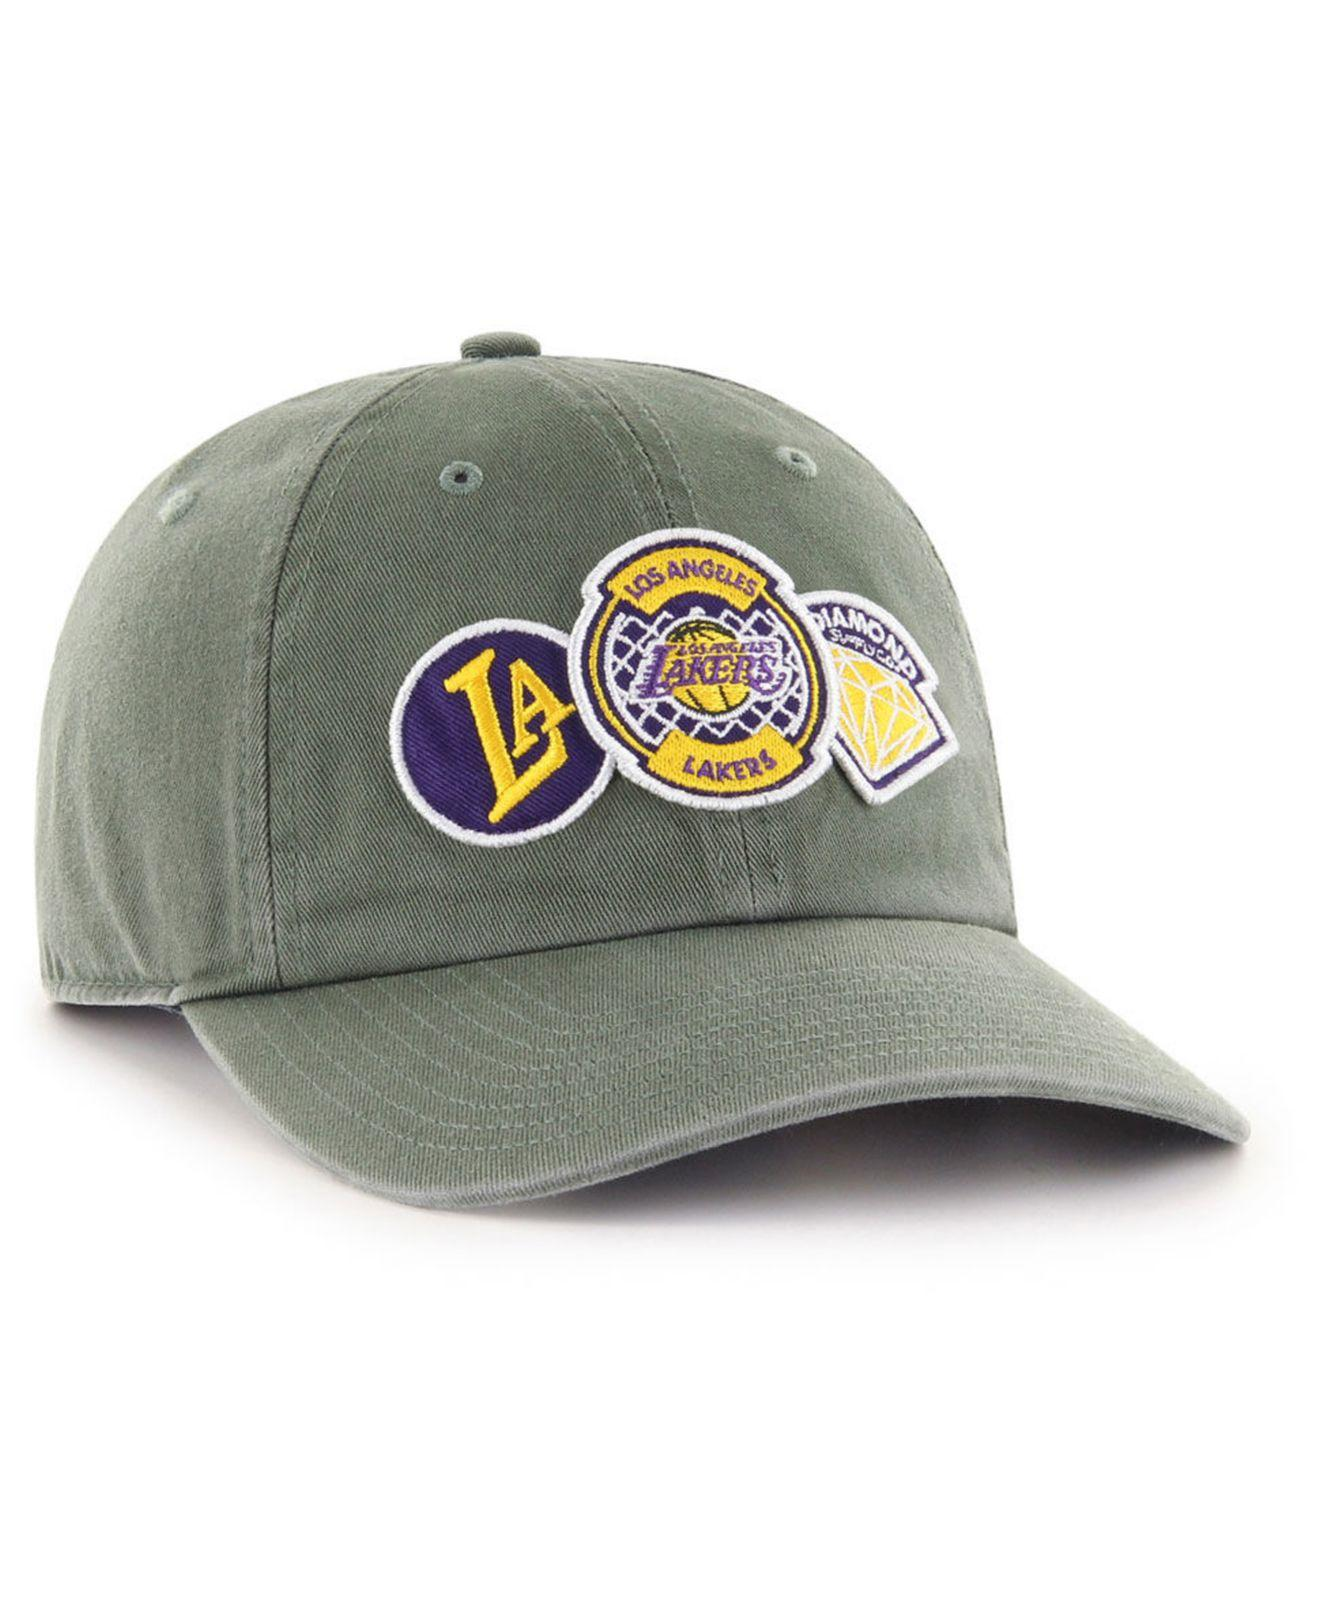 219467f117581 Lyst - 47 Brand Los Angeles Lakers Diamond Patch Clean Up Mf Cap in Gray  for Men